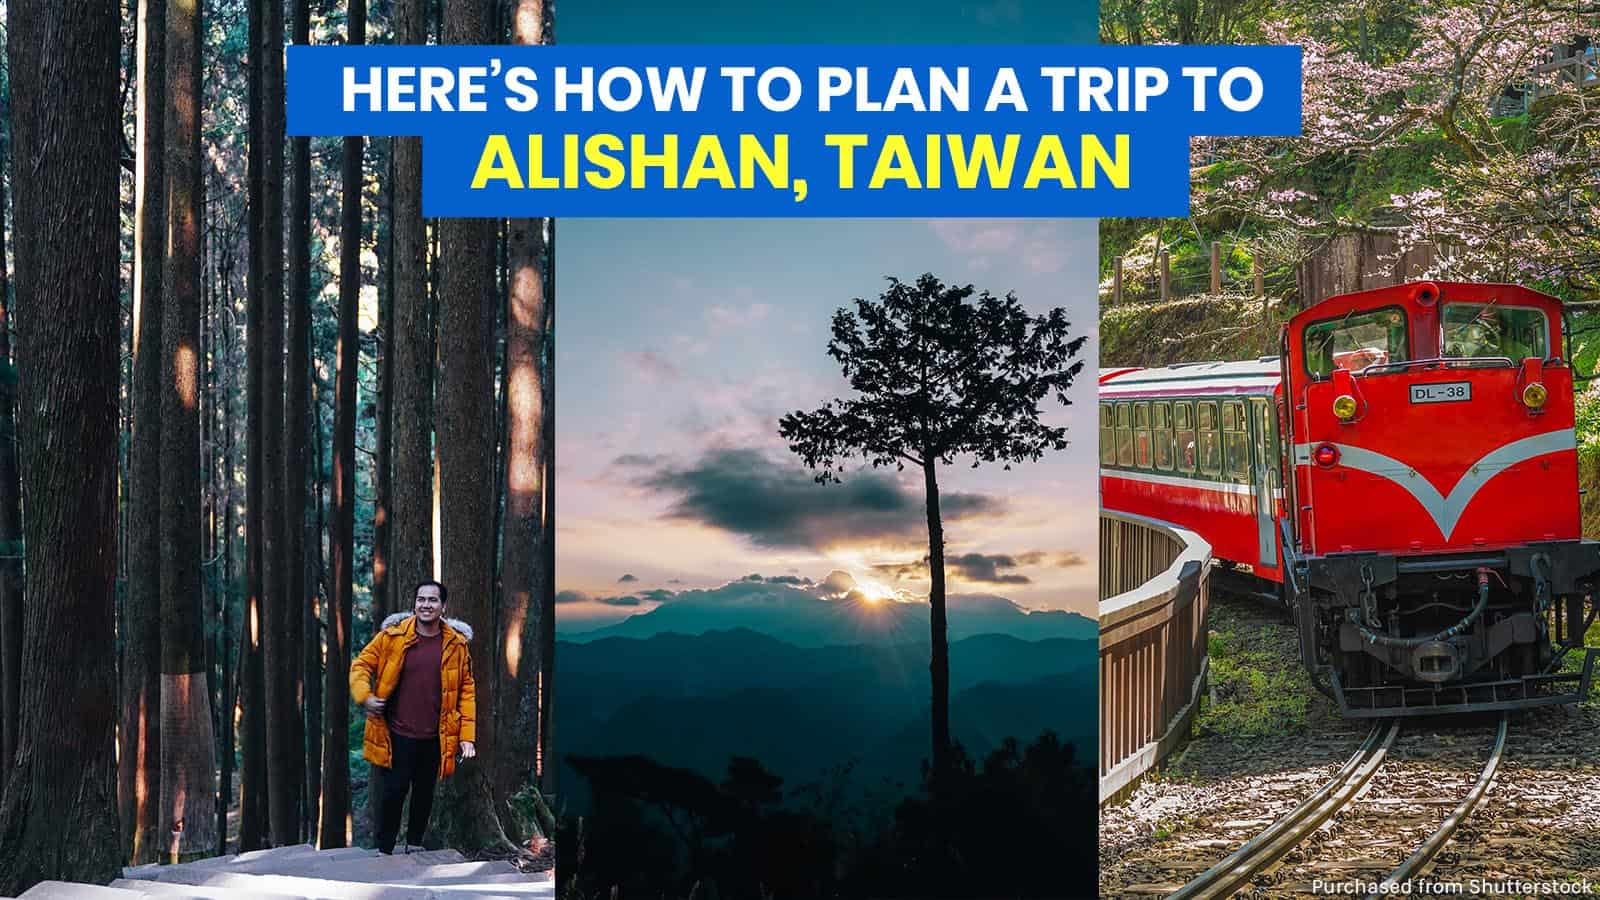 ALISHAN, TAIWAN: TRAVEL GUIDE with Sample Itinerary